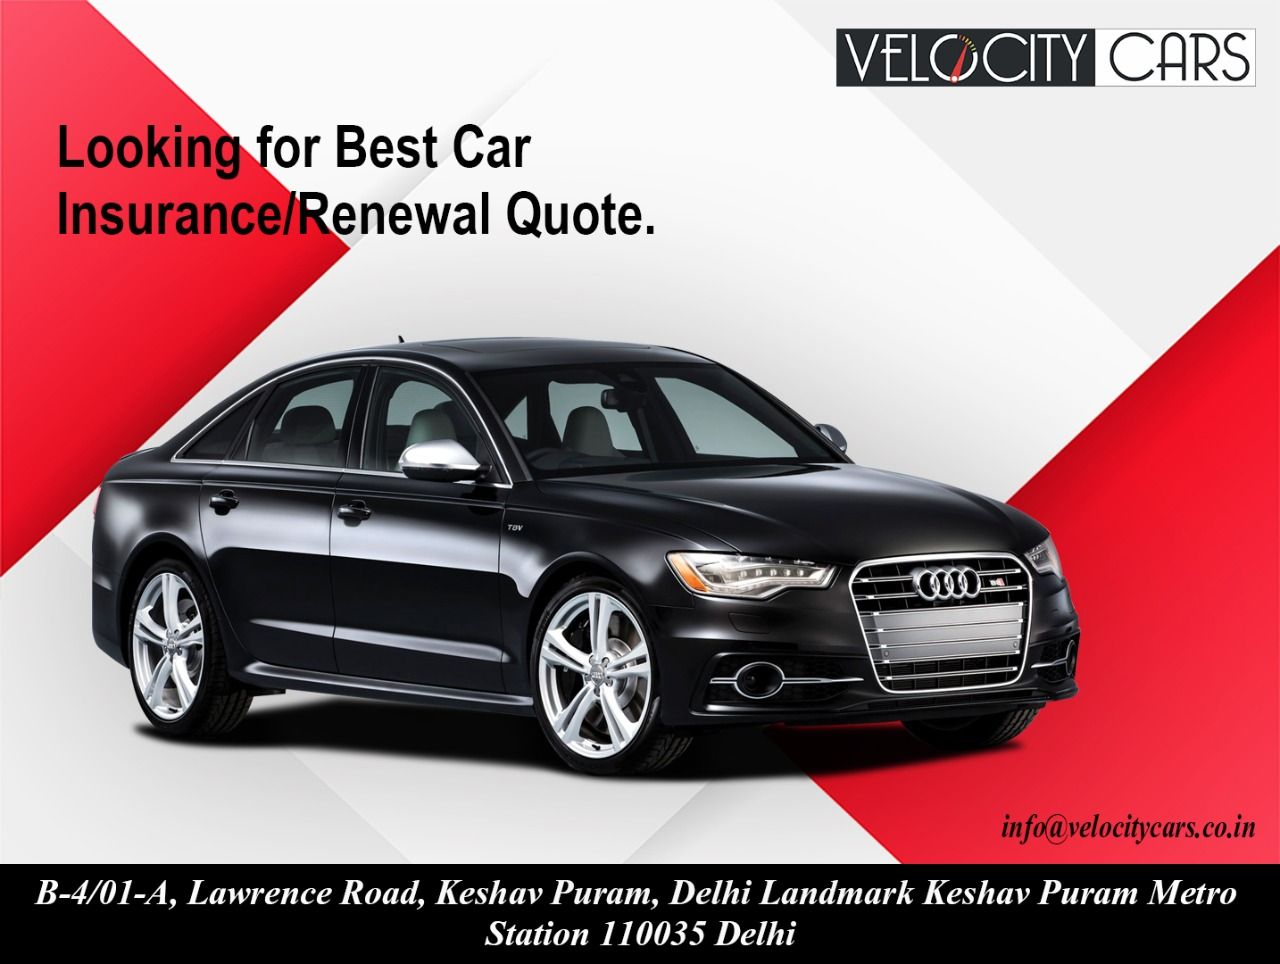 Looking For Best Car Insurance Renewal Quote 9811134957